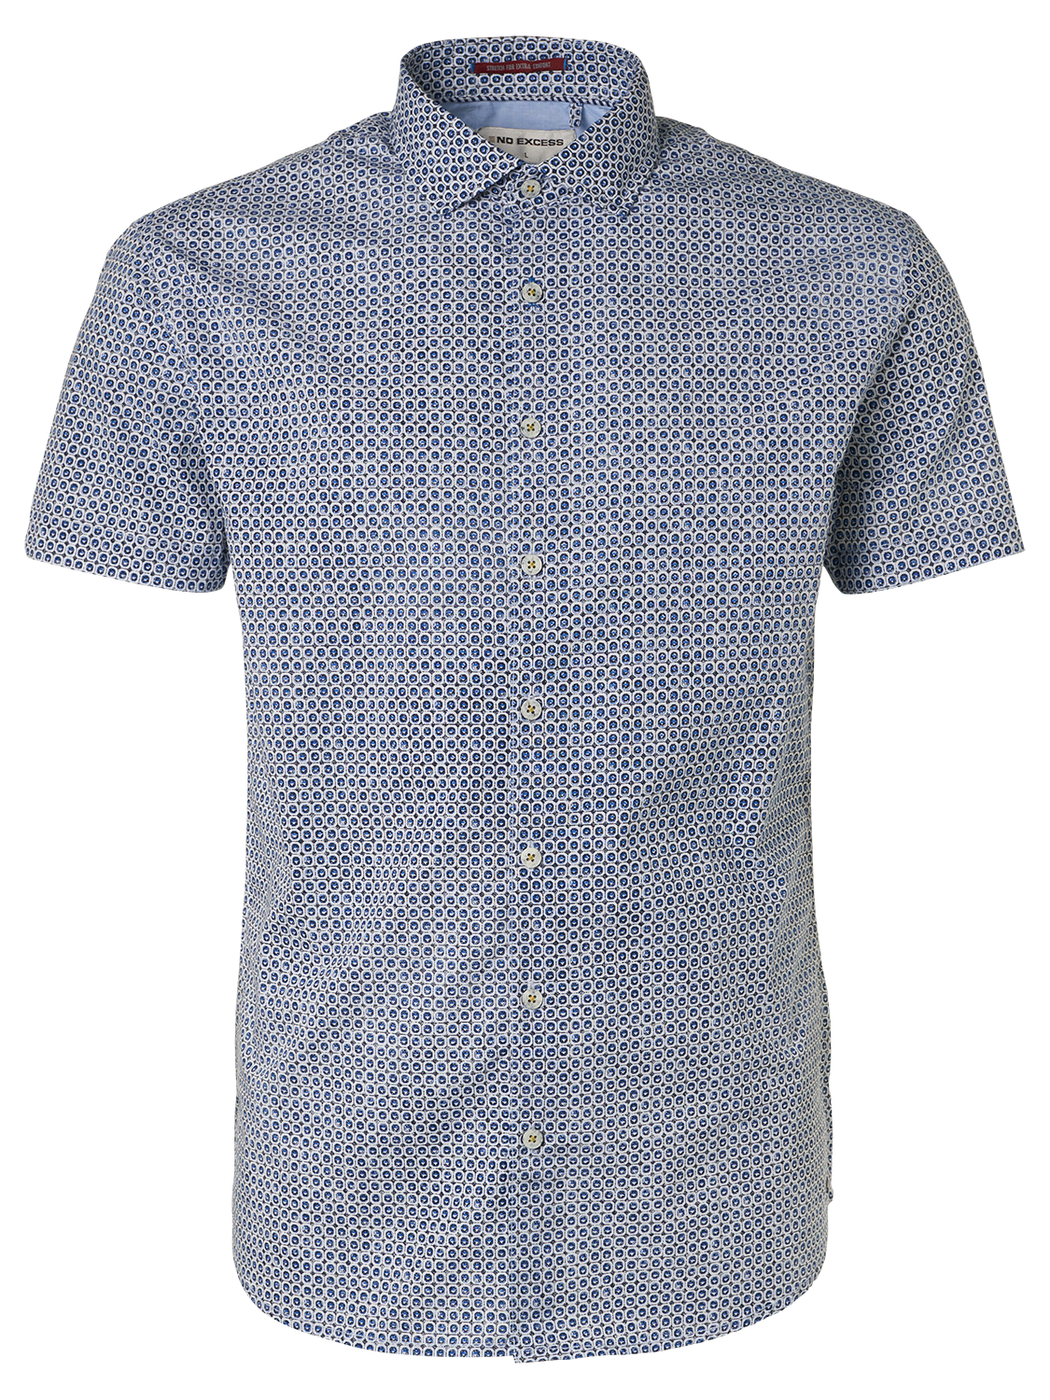 Mens S/S Print Shirt - Navy | Shop No Excess at Wallace and Gibbs